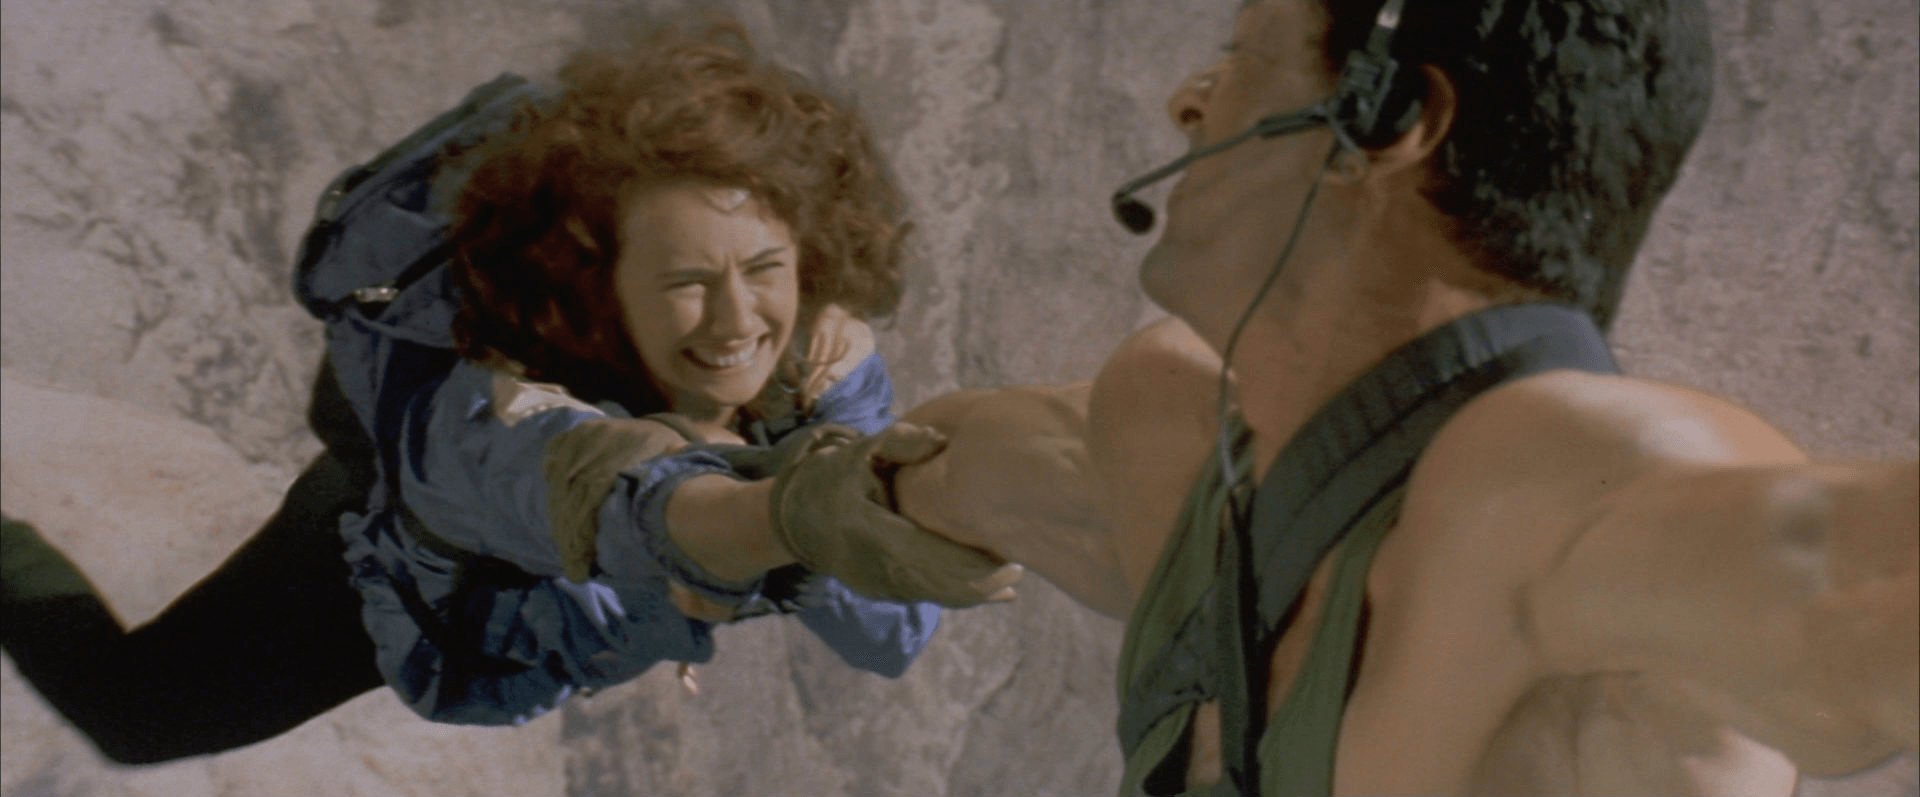 Cliffhanger wallpapers, Movie, HQ Cliffhanger pictures | 4K Wallpapers 2019